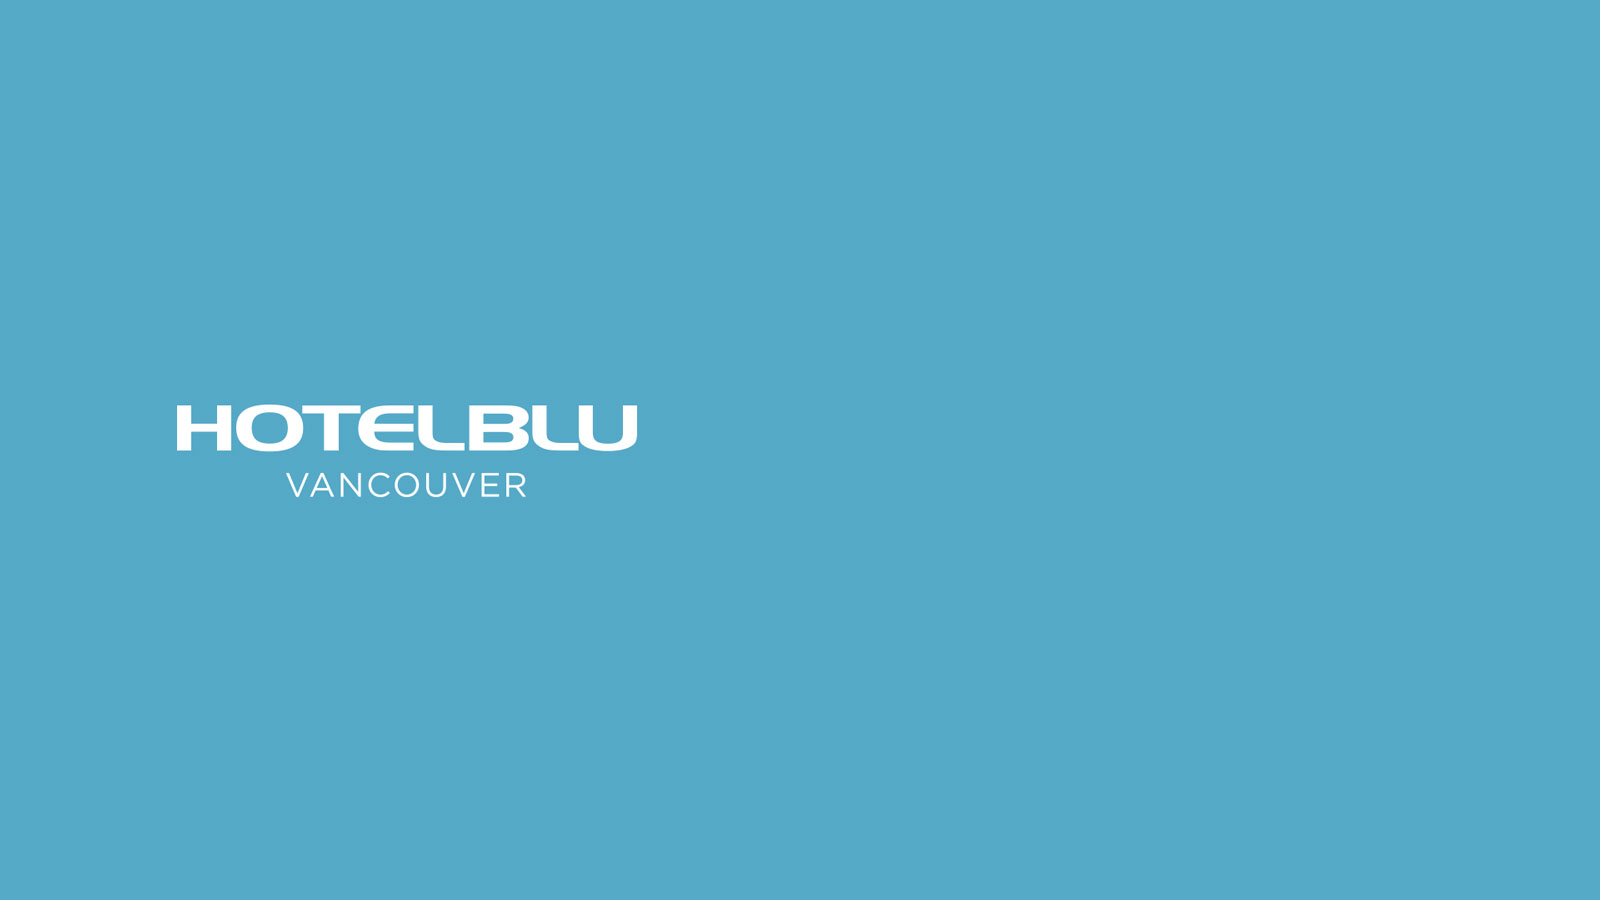 graphic design and web design for Hotel BLU